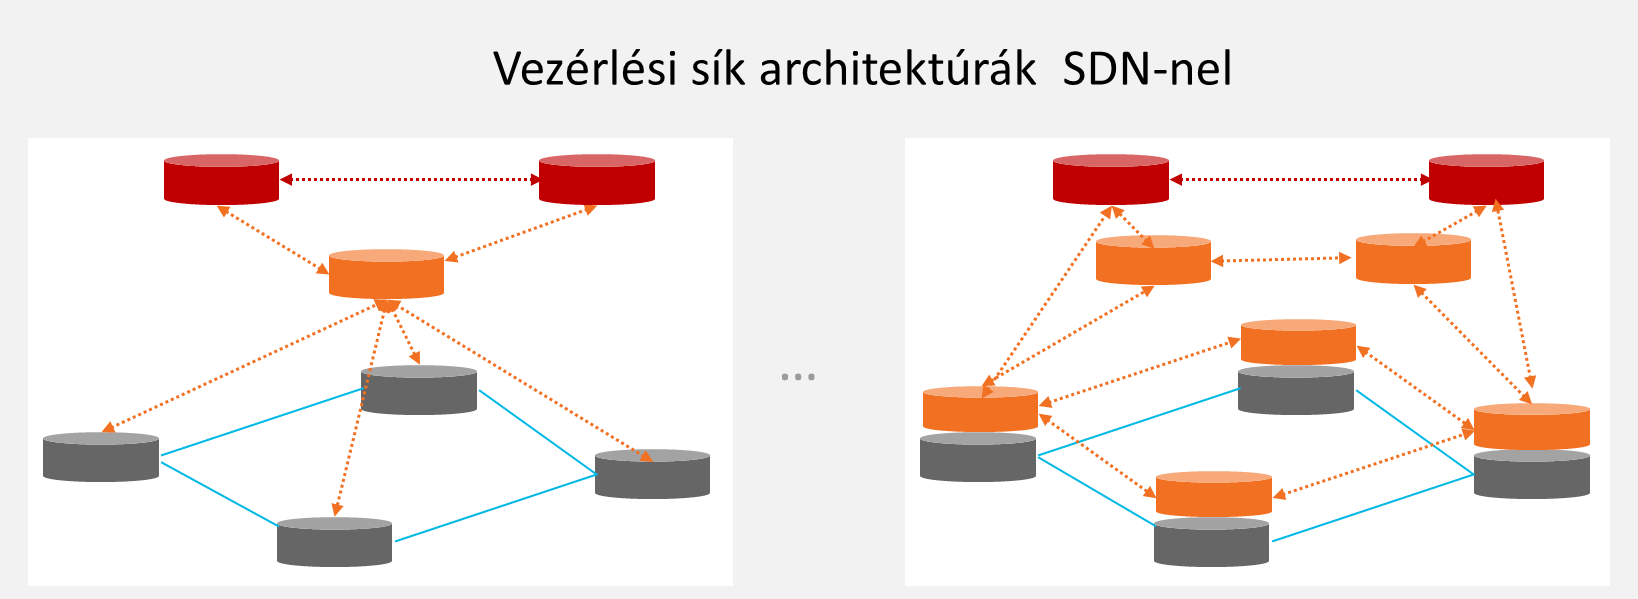 SDN router/switch